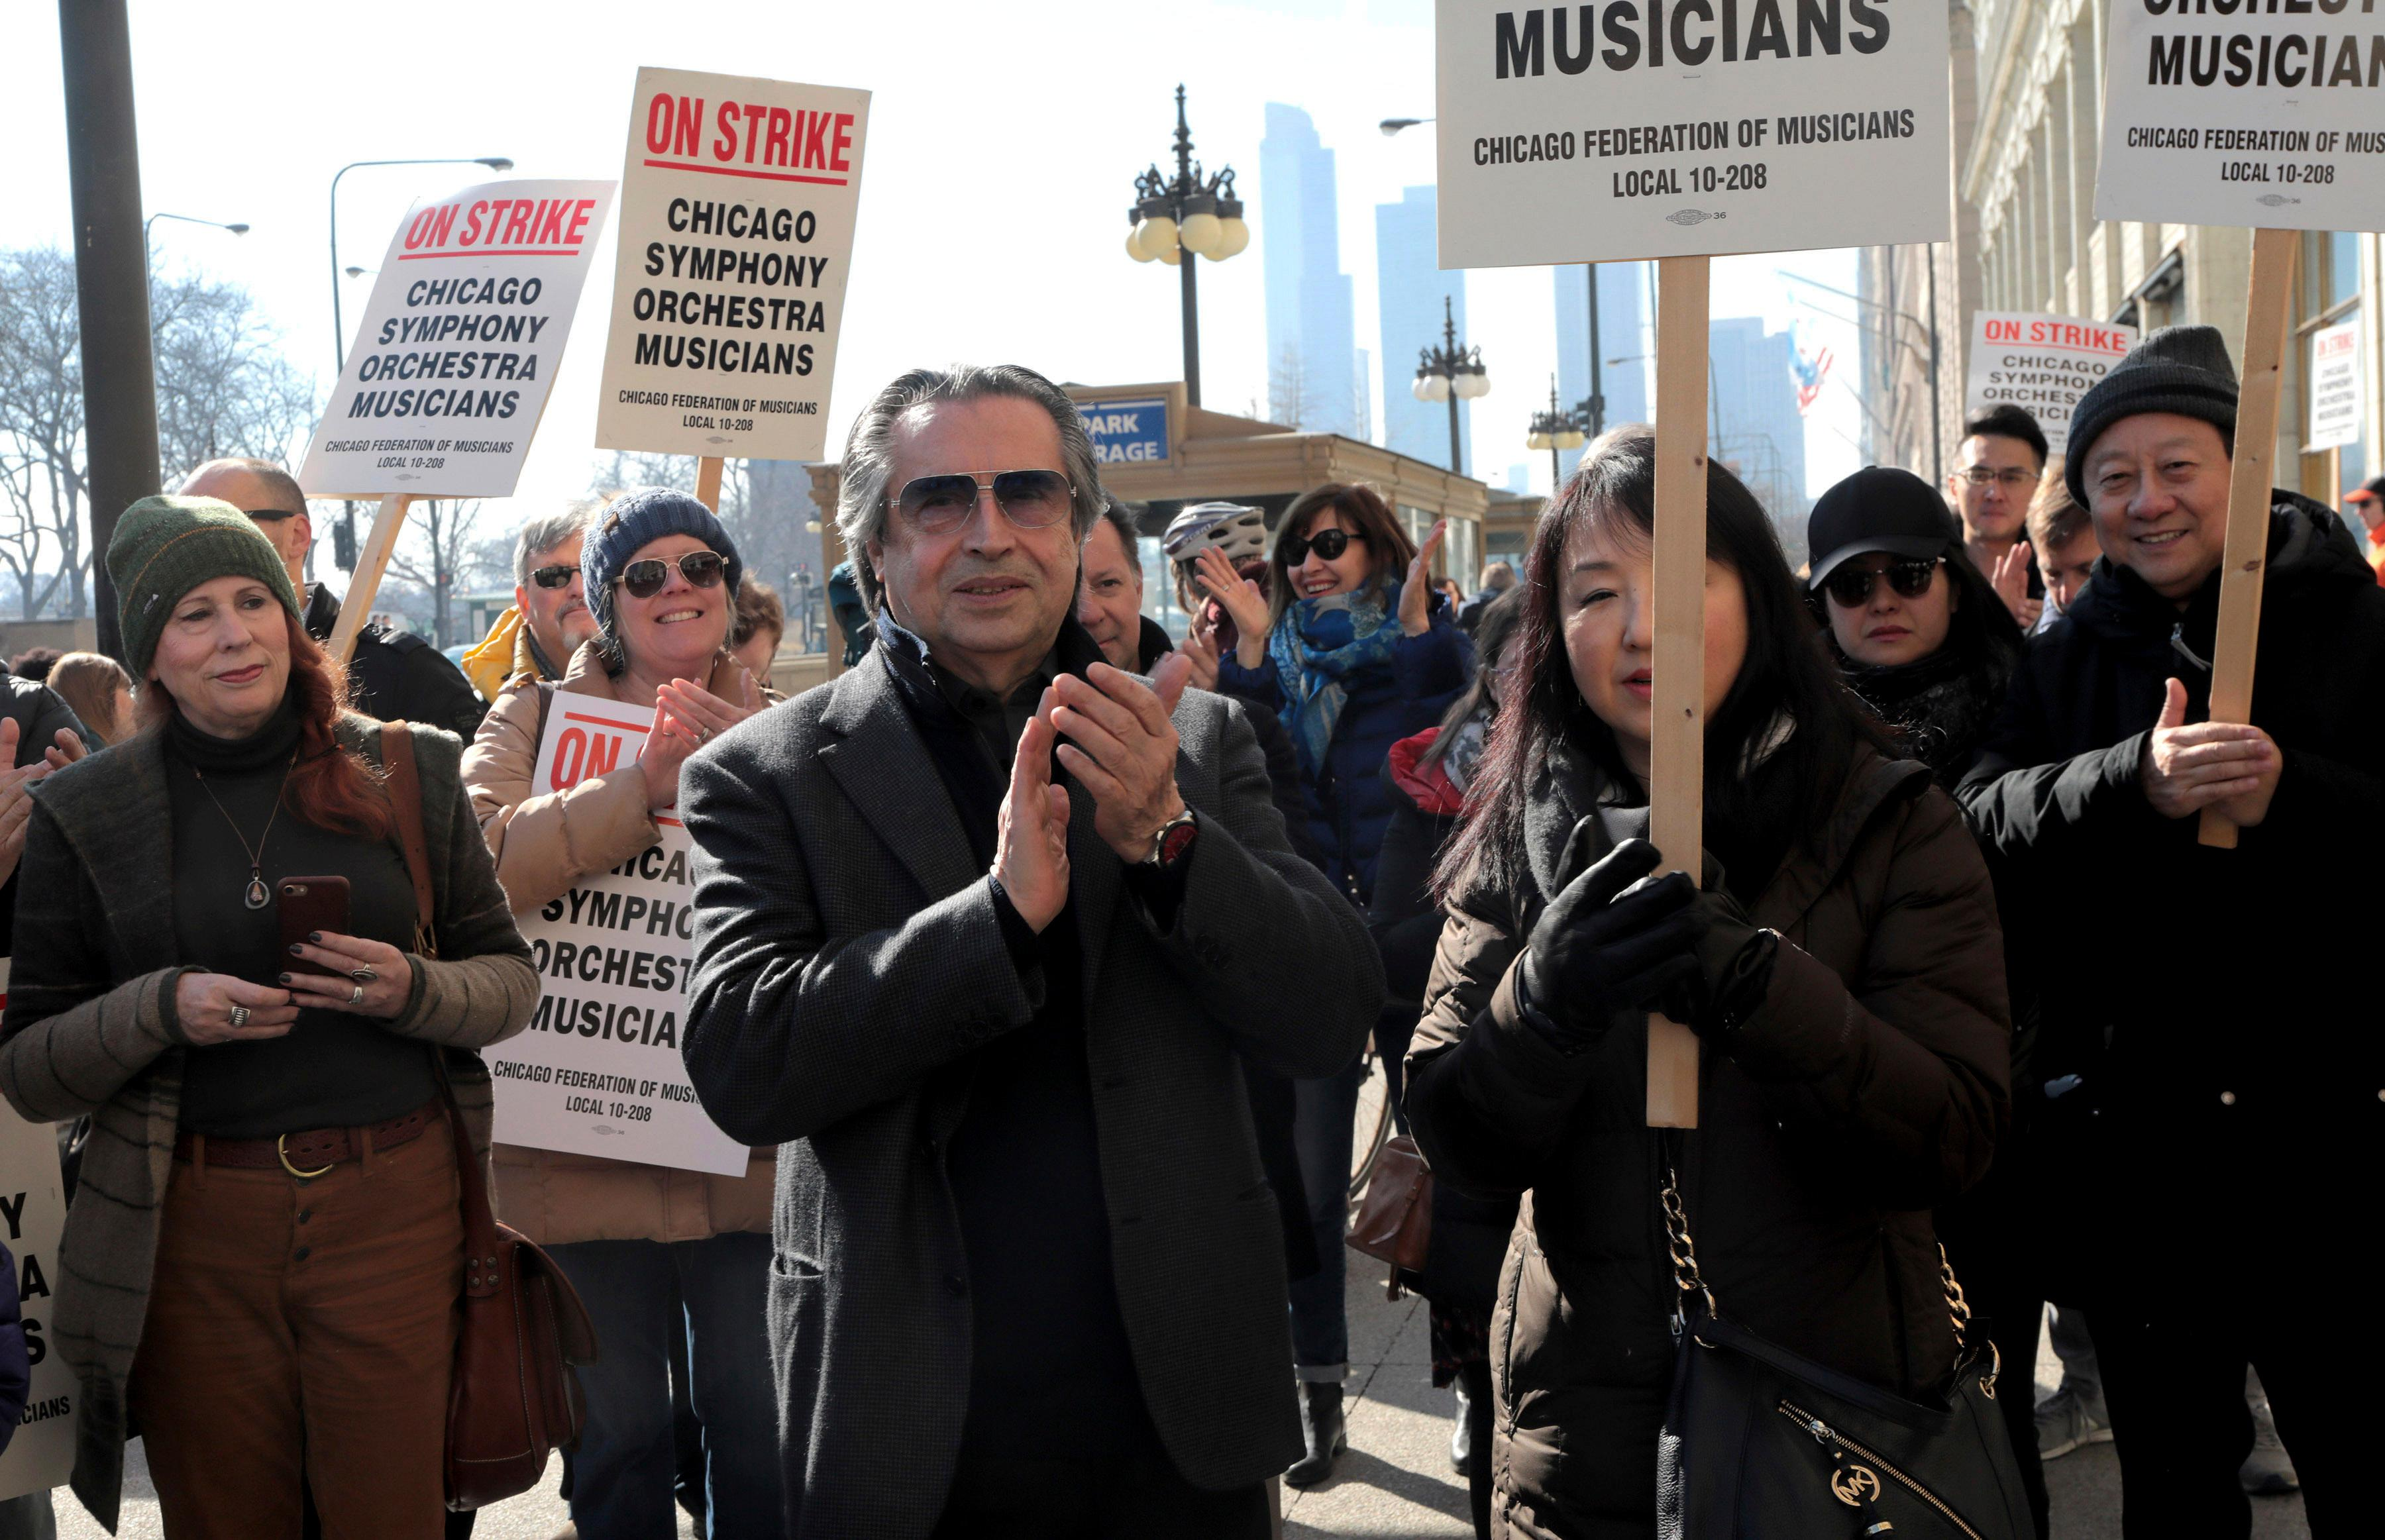 Chicago Symphony Orchestra conductor Riccardo Muti joins in solidarity with striking CSO musicians during a press conference outside the Chicago Symphony Orchestra building, Tuesday, March 12, 2019. (Antonio Perez/Chicago Tribune via AP)